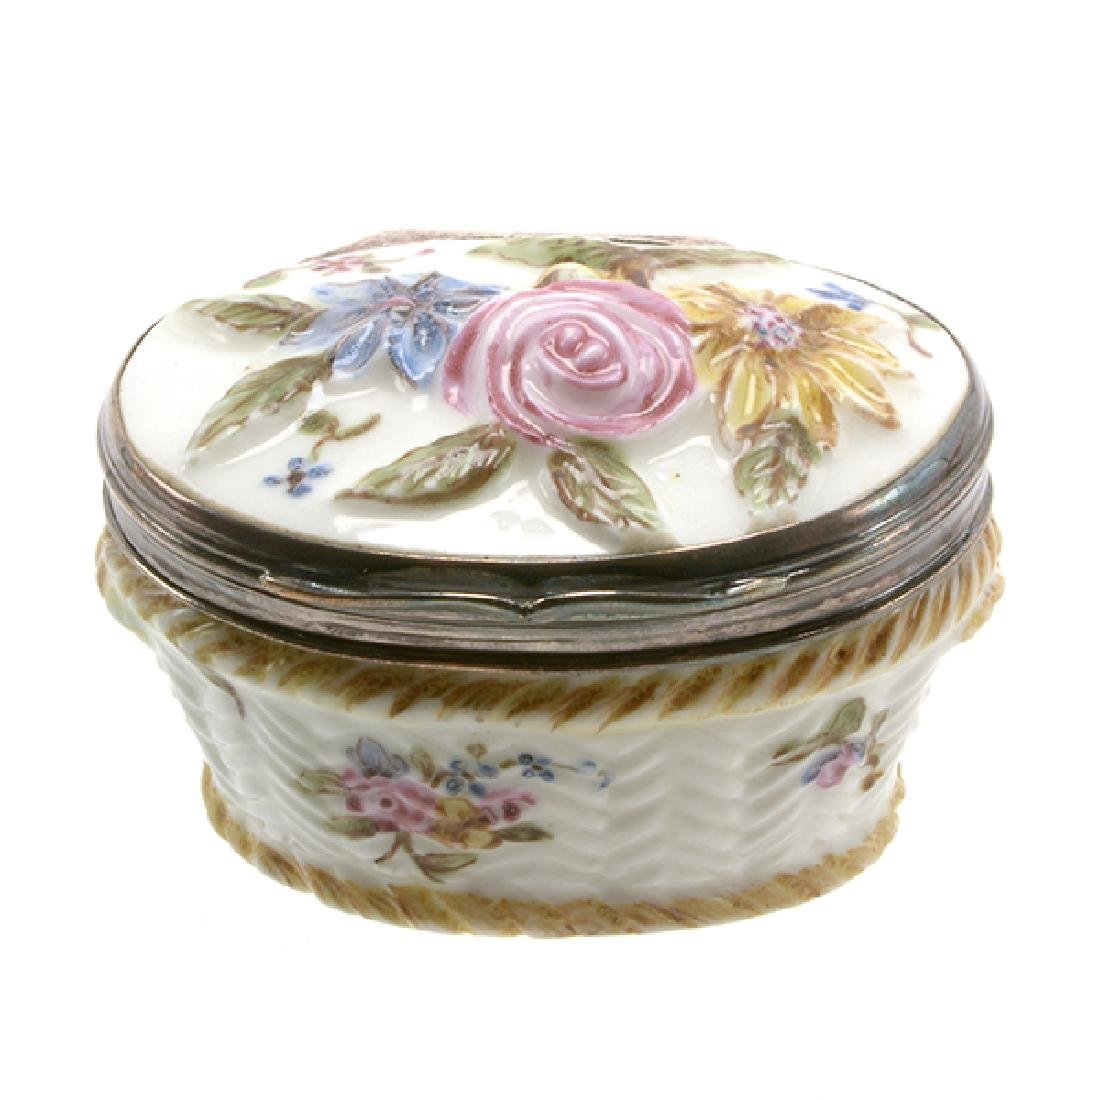 French Mennecy Silver Mounted Porcelain Snuff Box